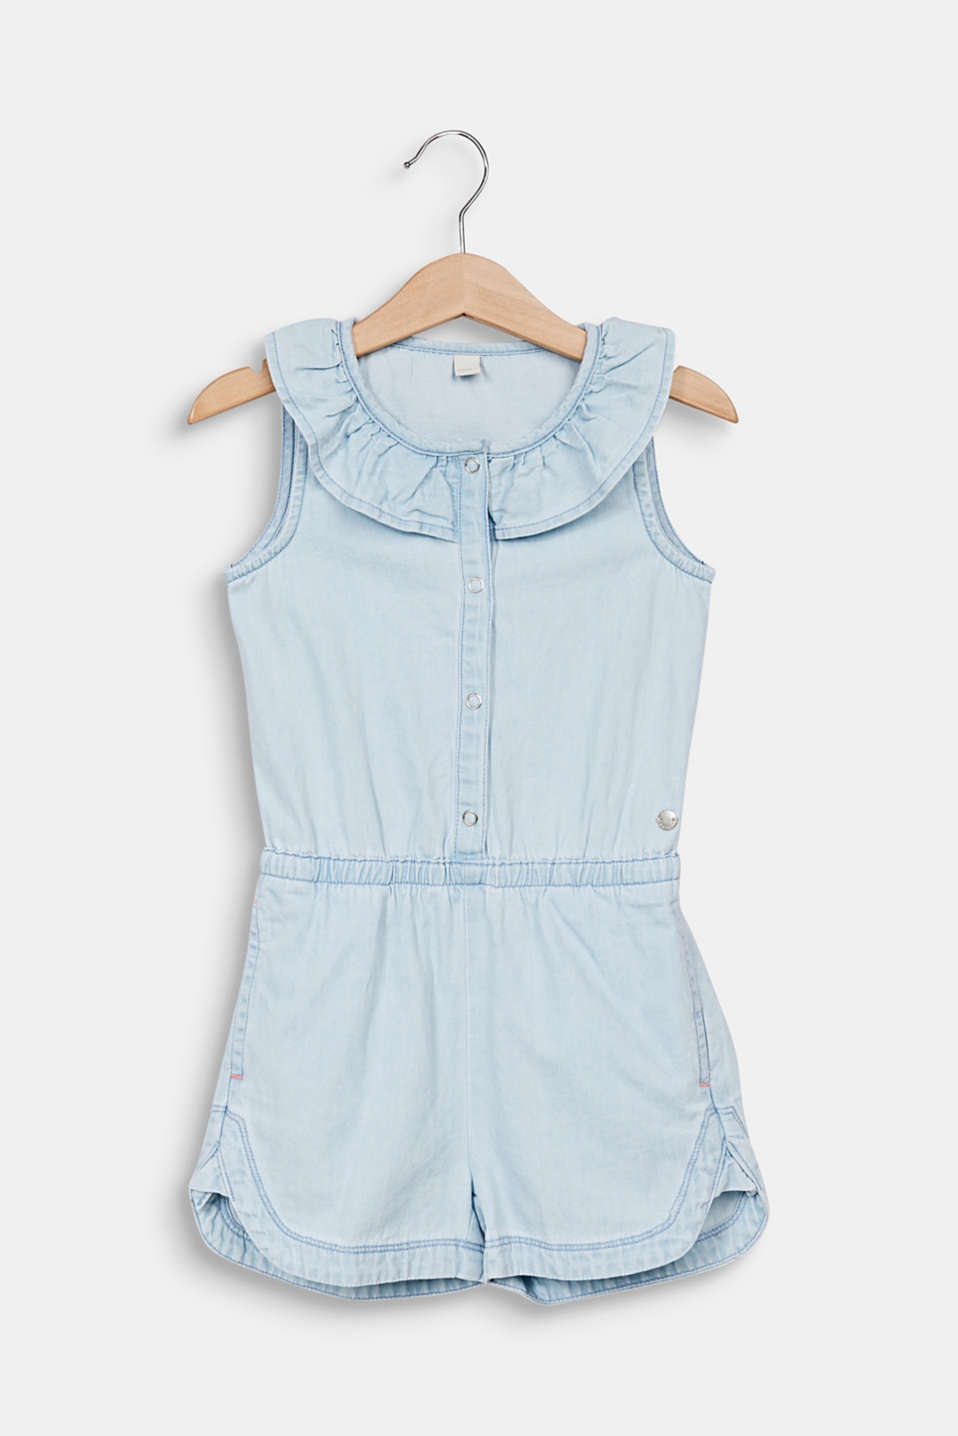 Esprit - Denim dungarees made of 100% cotton